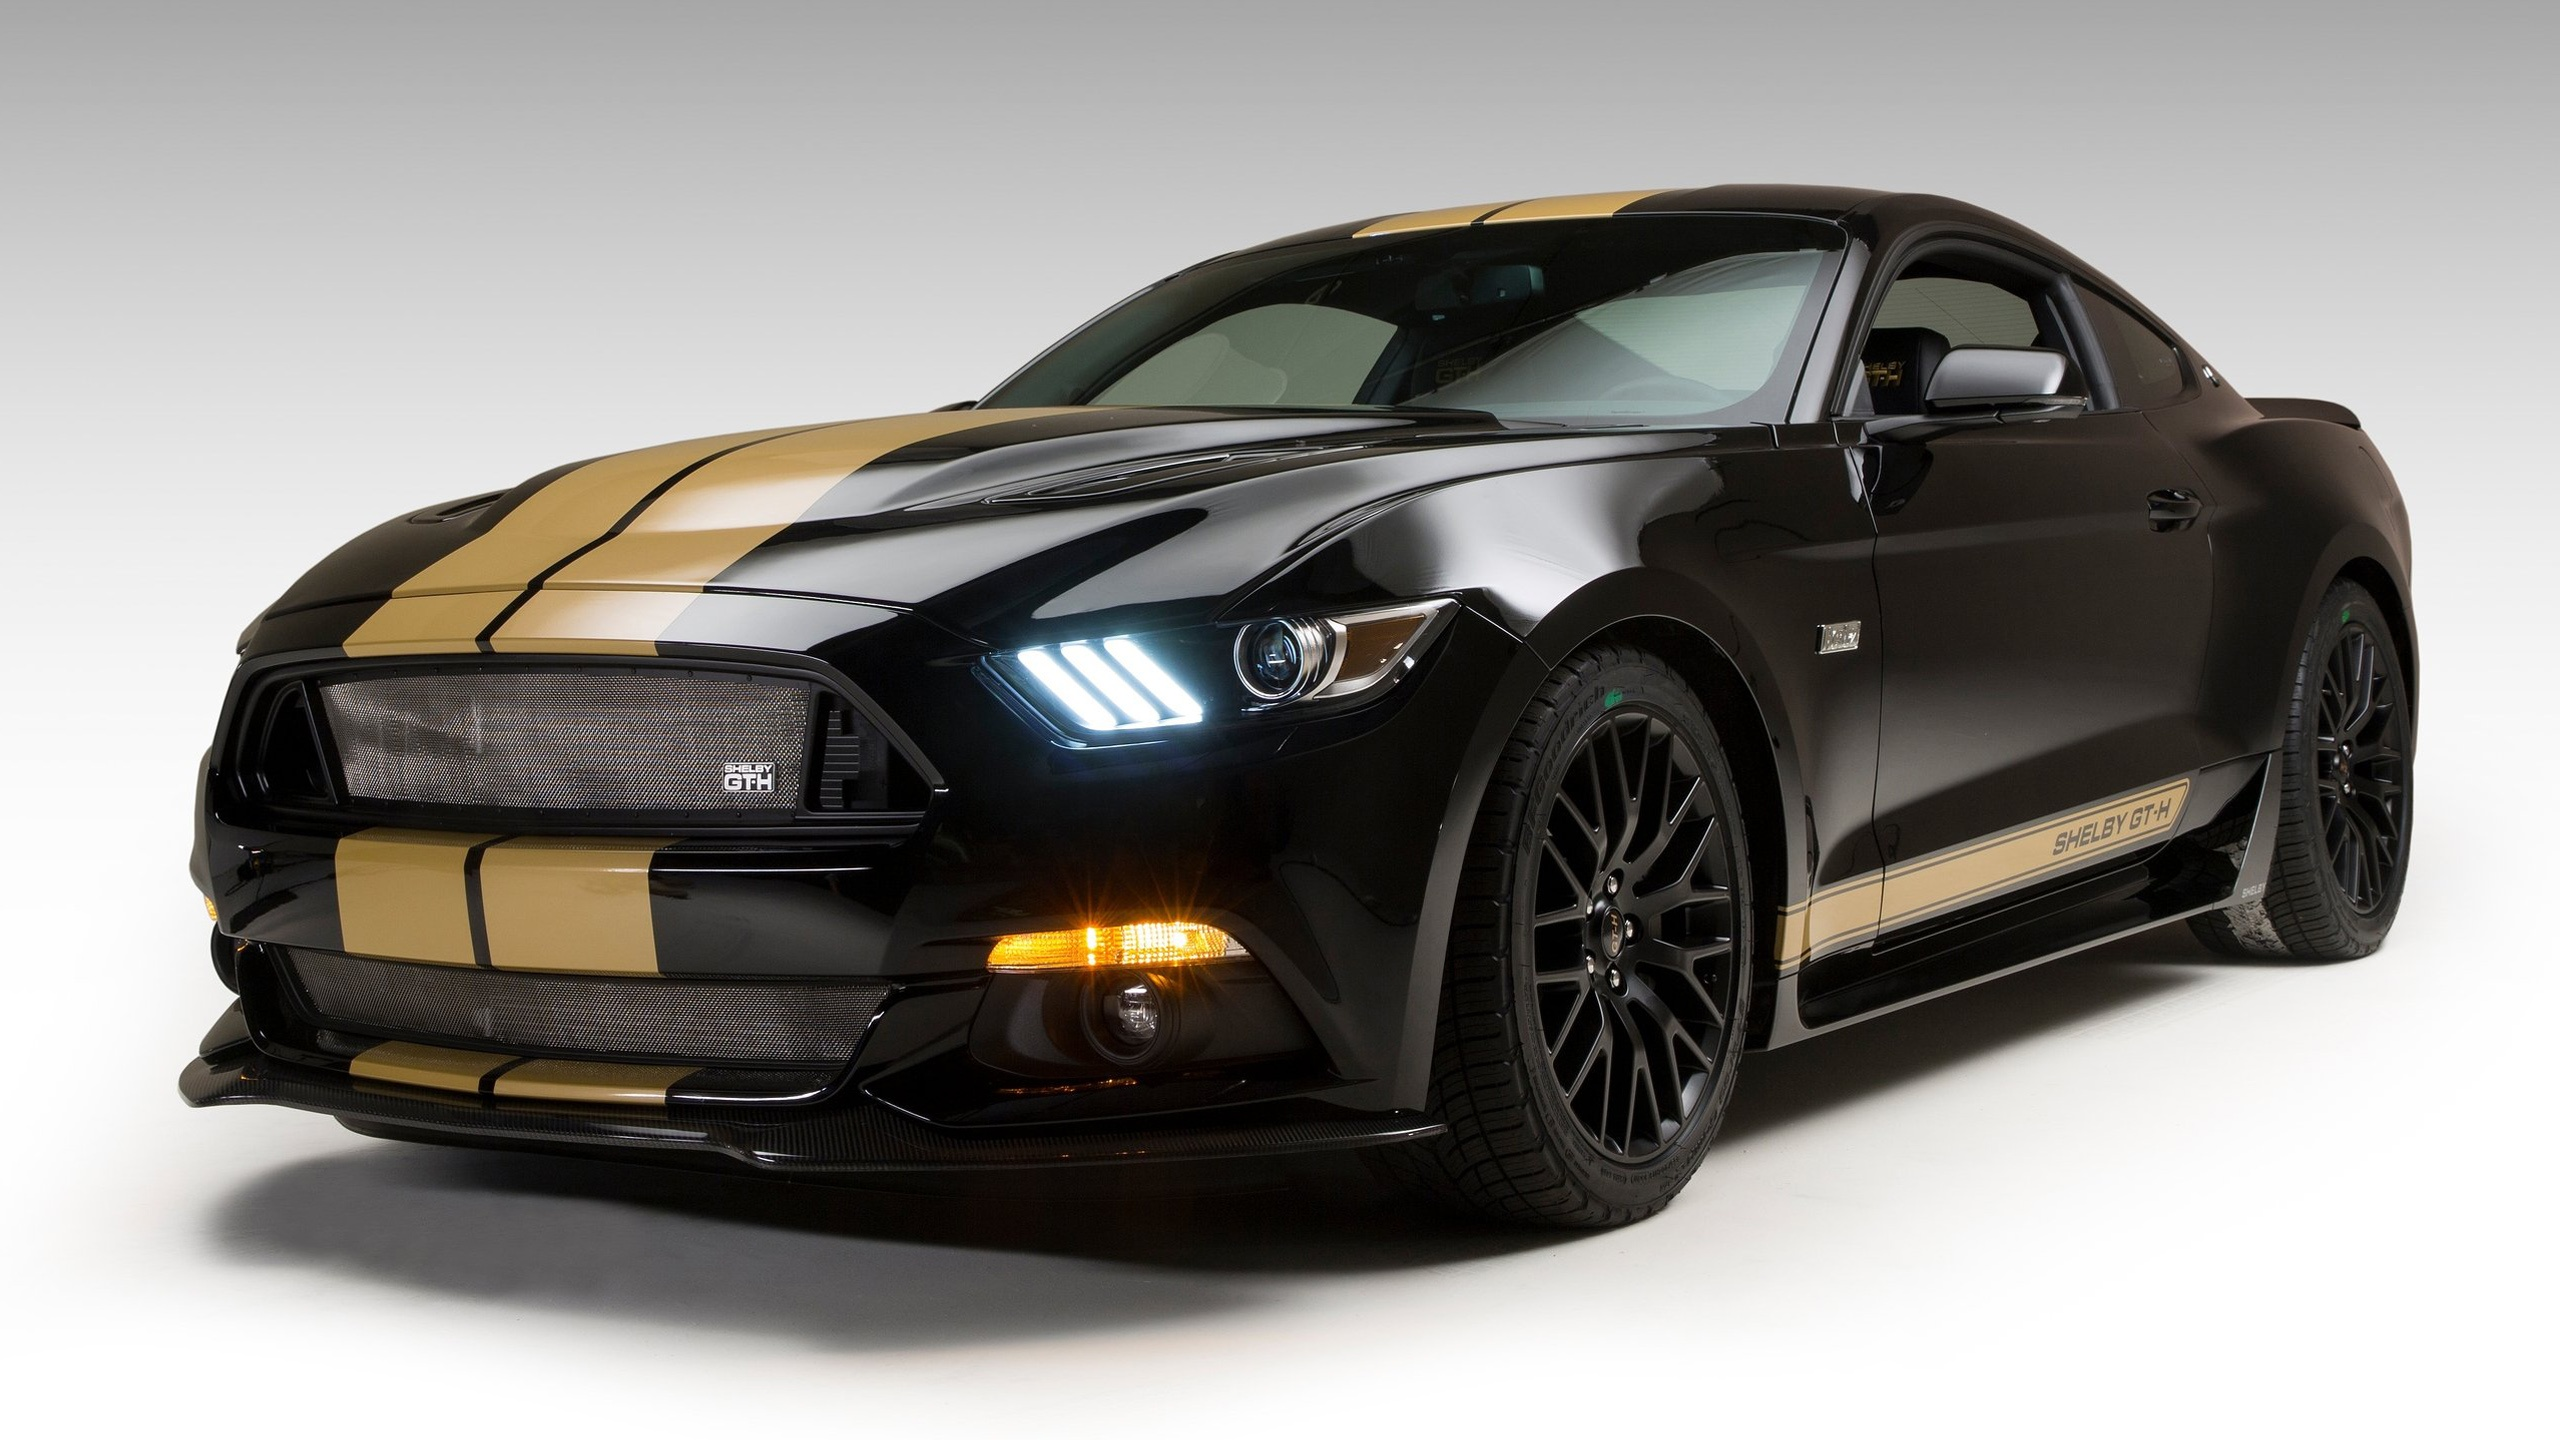 2016 Ford Mustang Shelby GT H HD Wallpaper   iHD Wallpapers 2560x1440